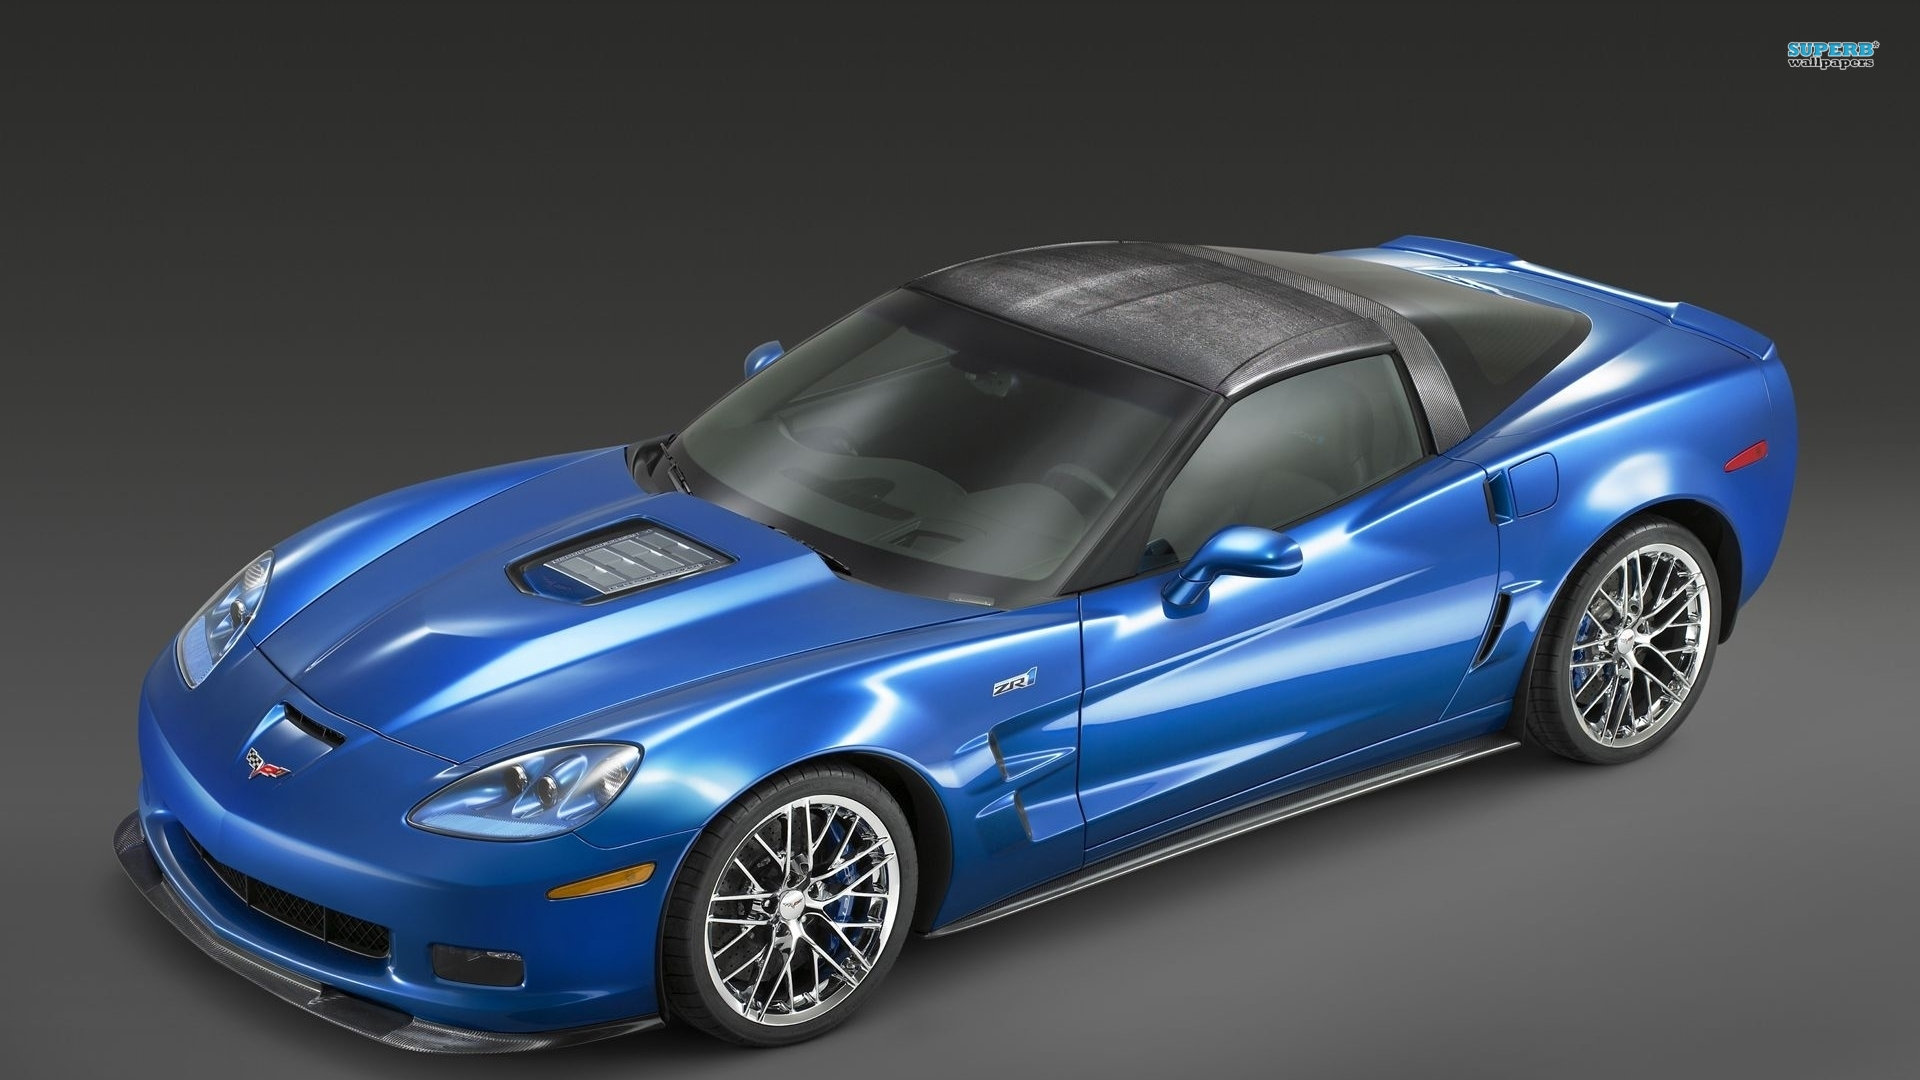 2014 chevrolet corvette c6 zr1 pictures information and specs. Cars Review. Best American Auto & Cars Review